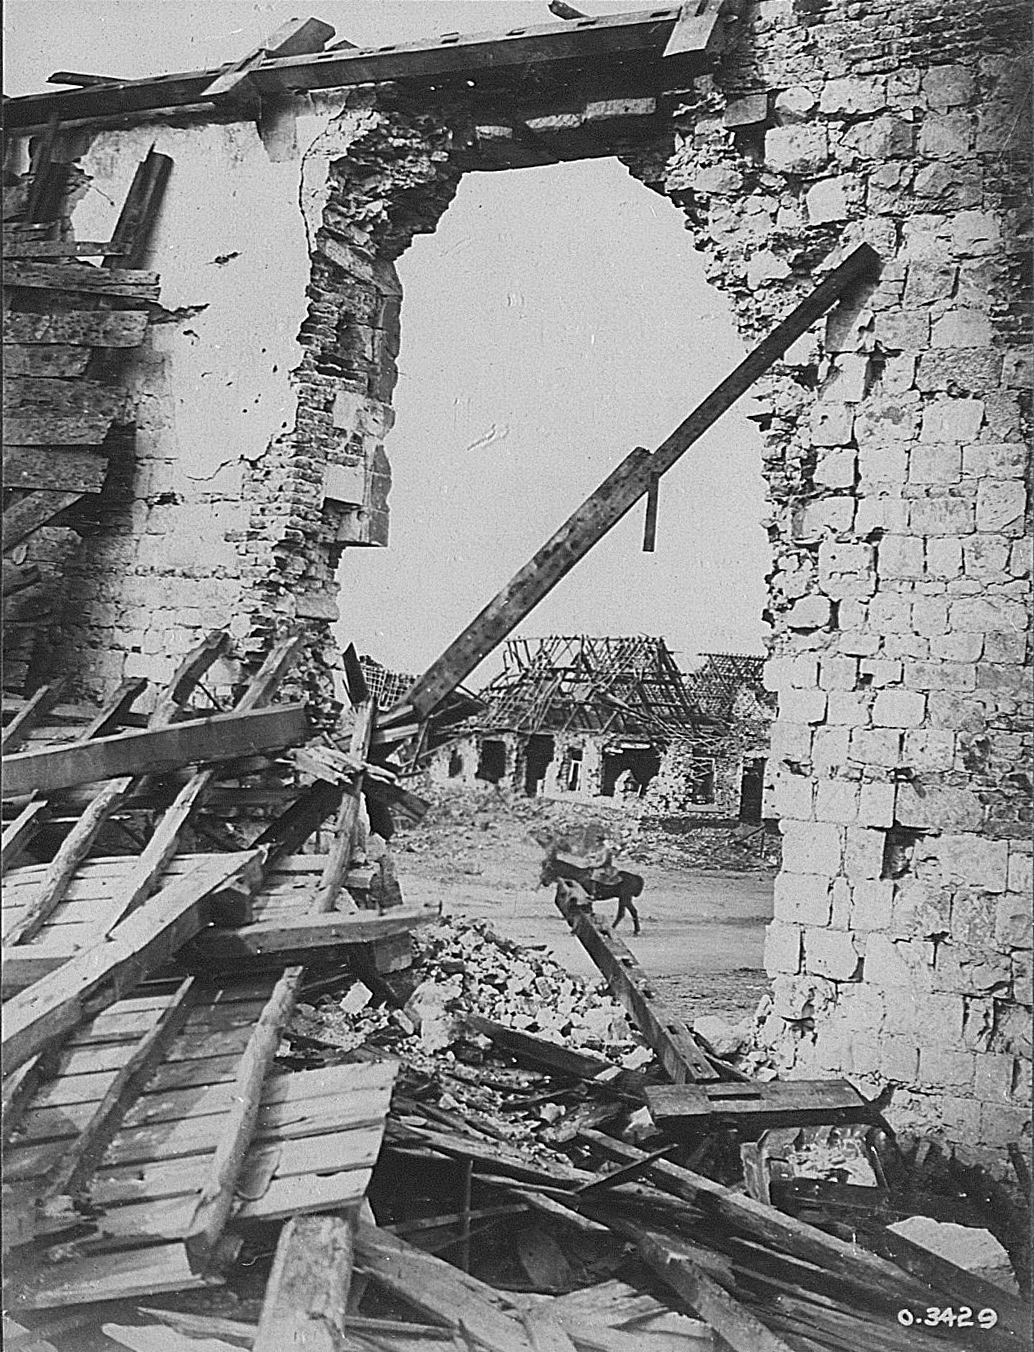 A lone cavalry officer rides through a ruined village